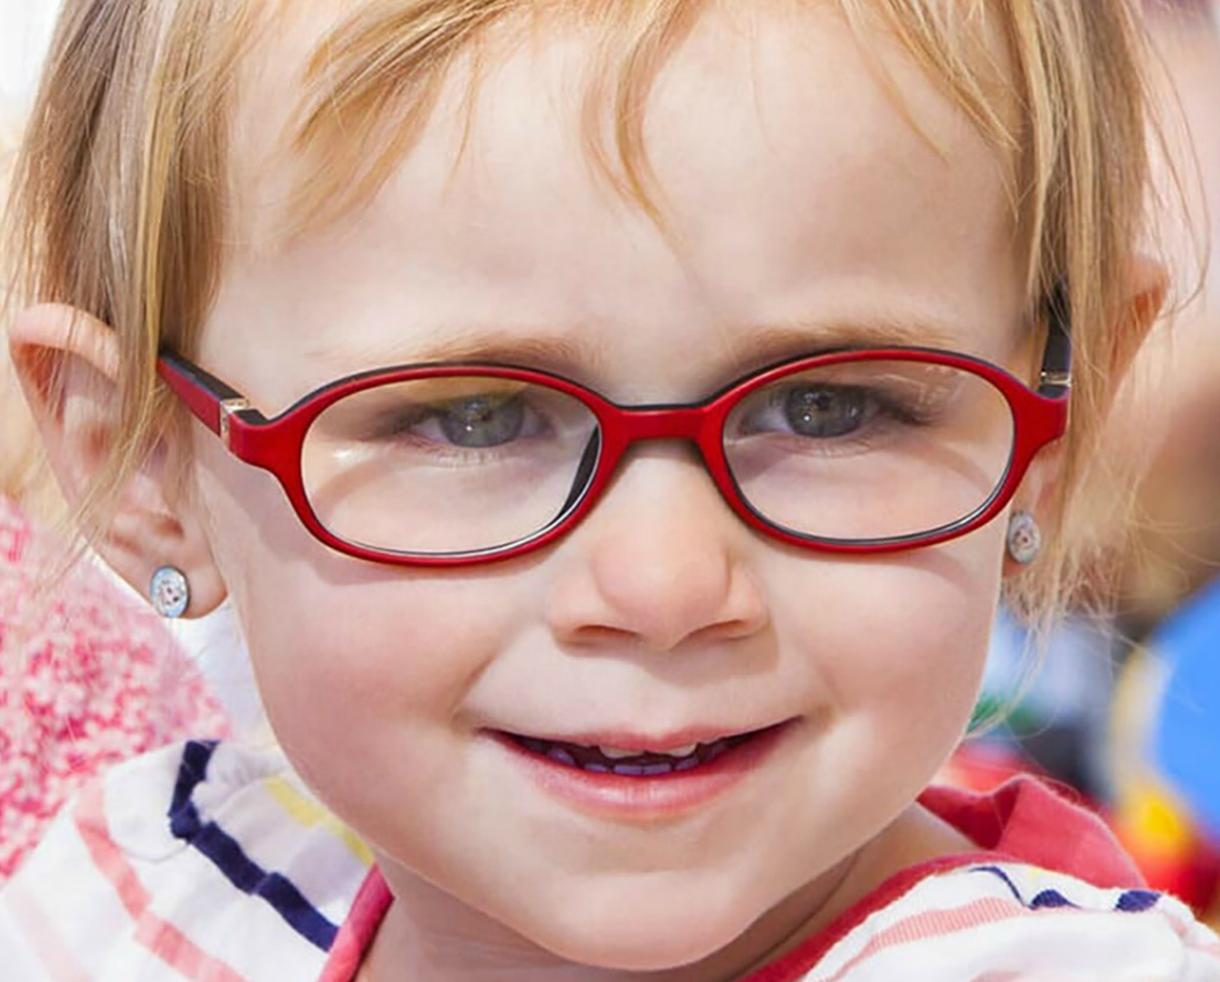 6366fdb76e595 Deal  Kid-Friendly Glasses Starting at Just  6.95 From Zenni Optical ...